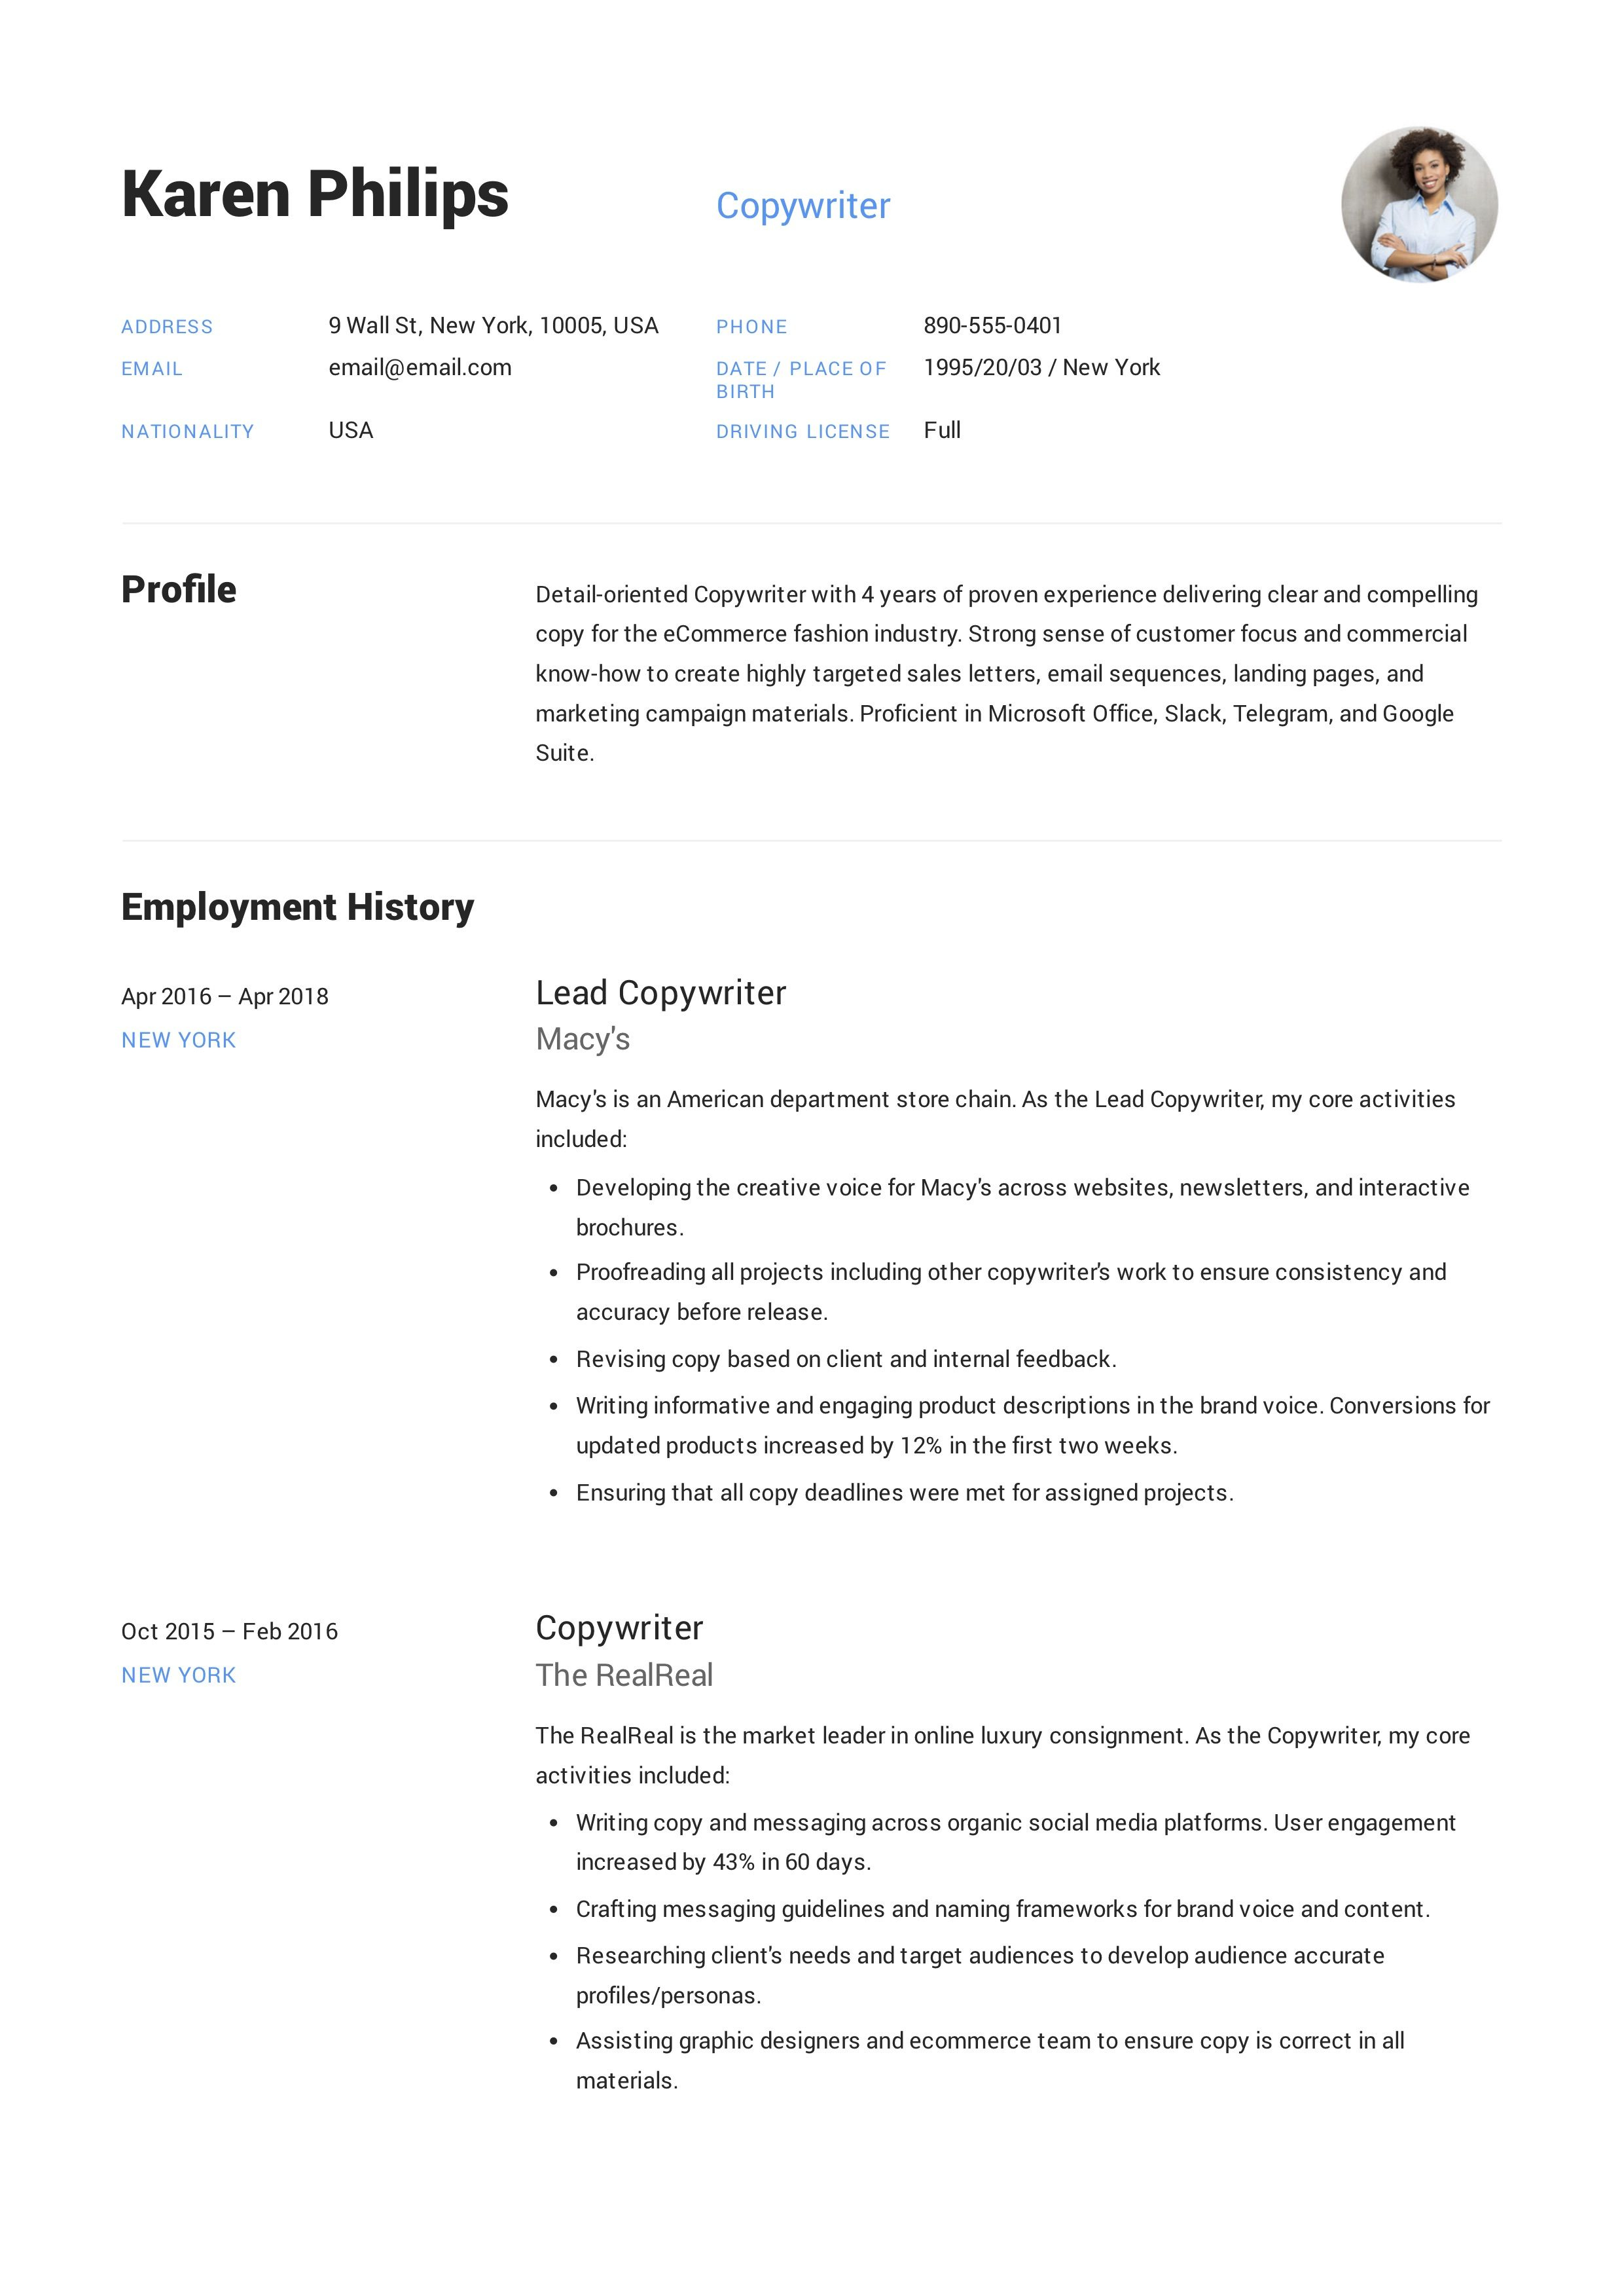 Copywriter Resume, template, design, tips, examples, free